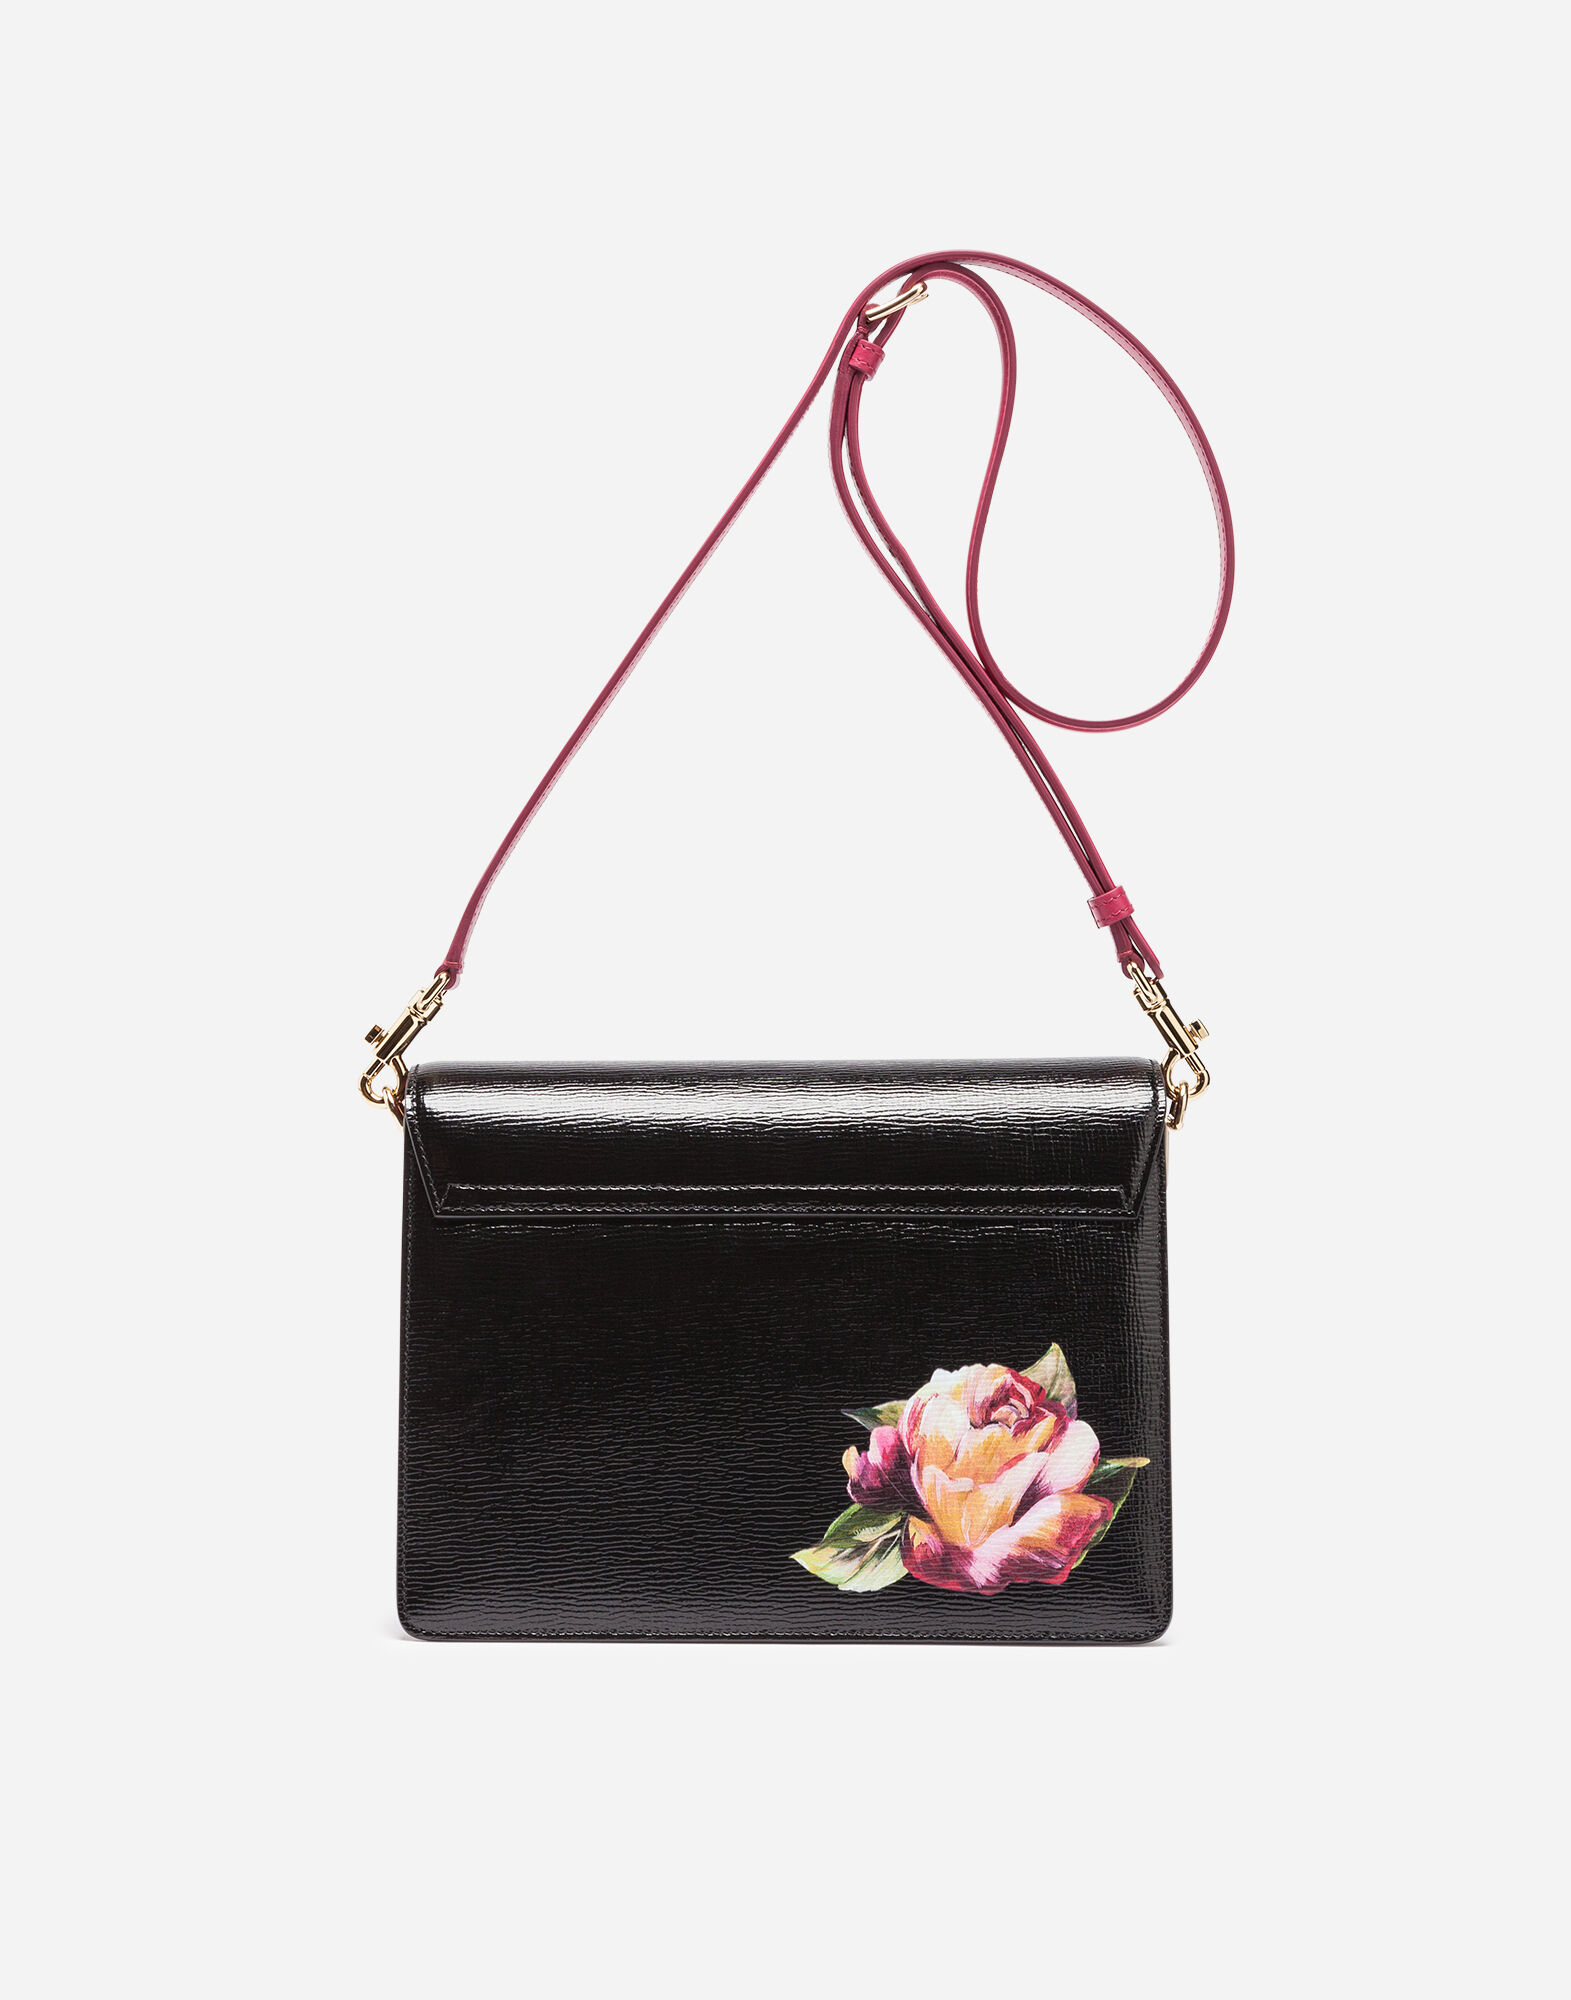 PRINTED LEATHER LUCIA SHOULDER BAG